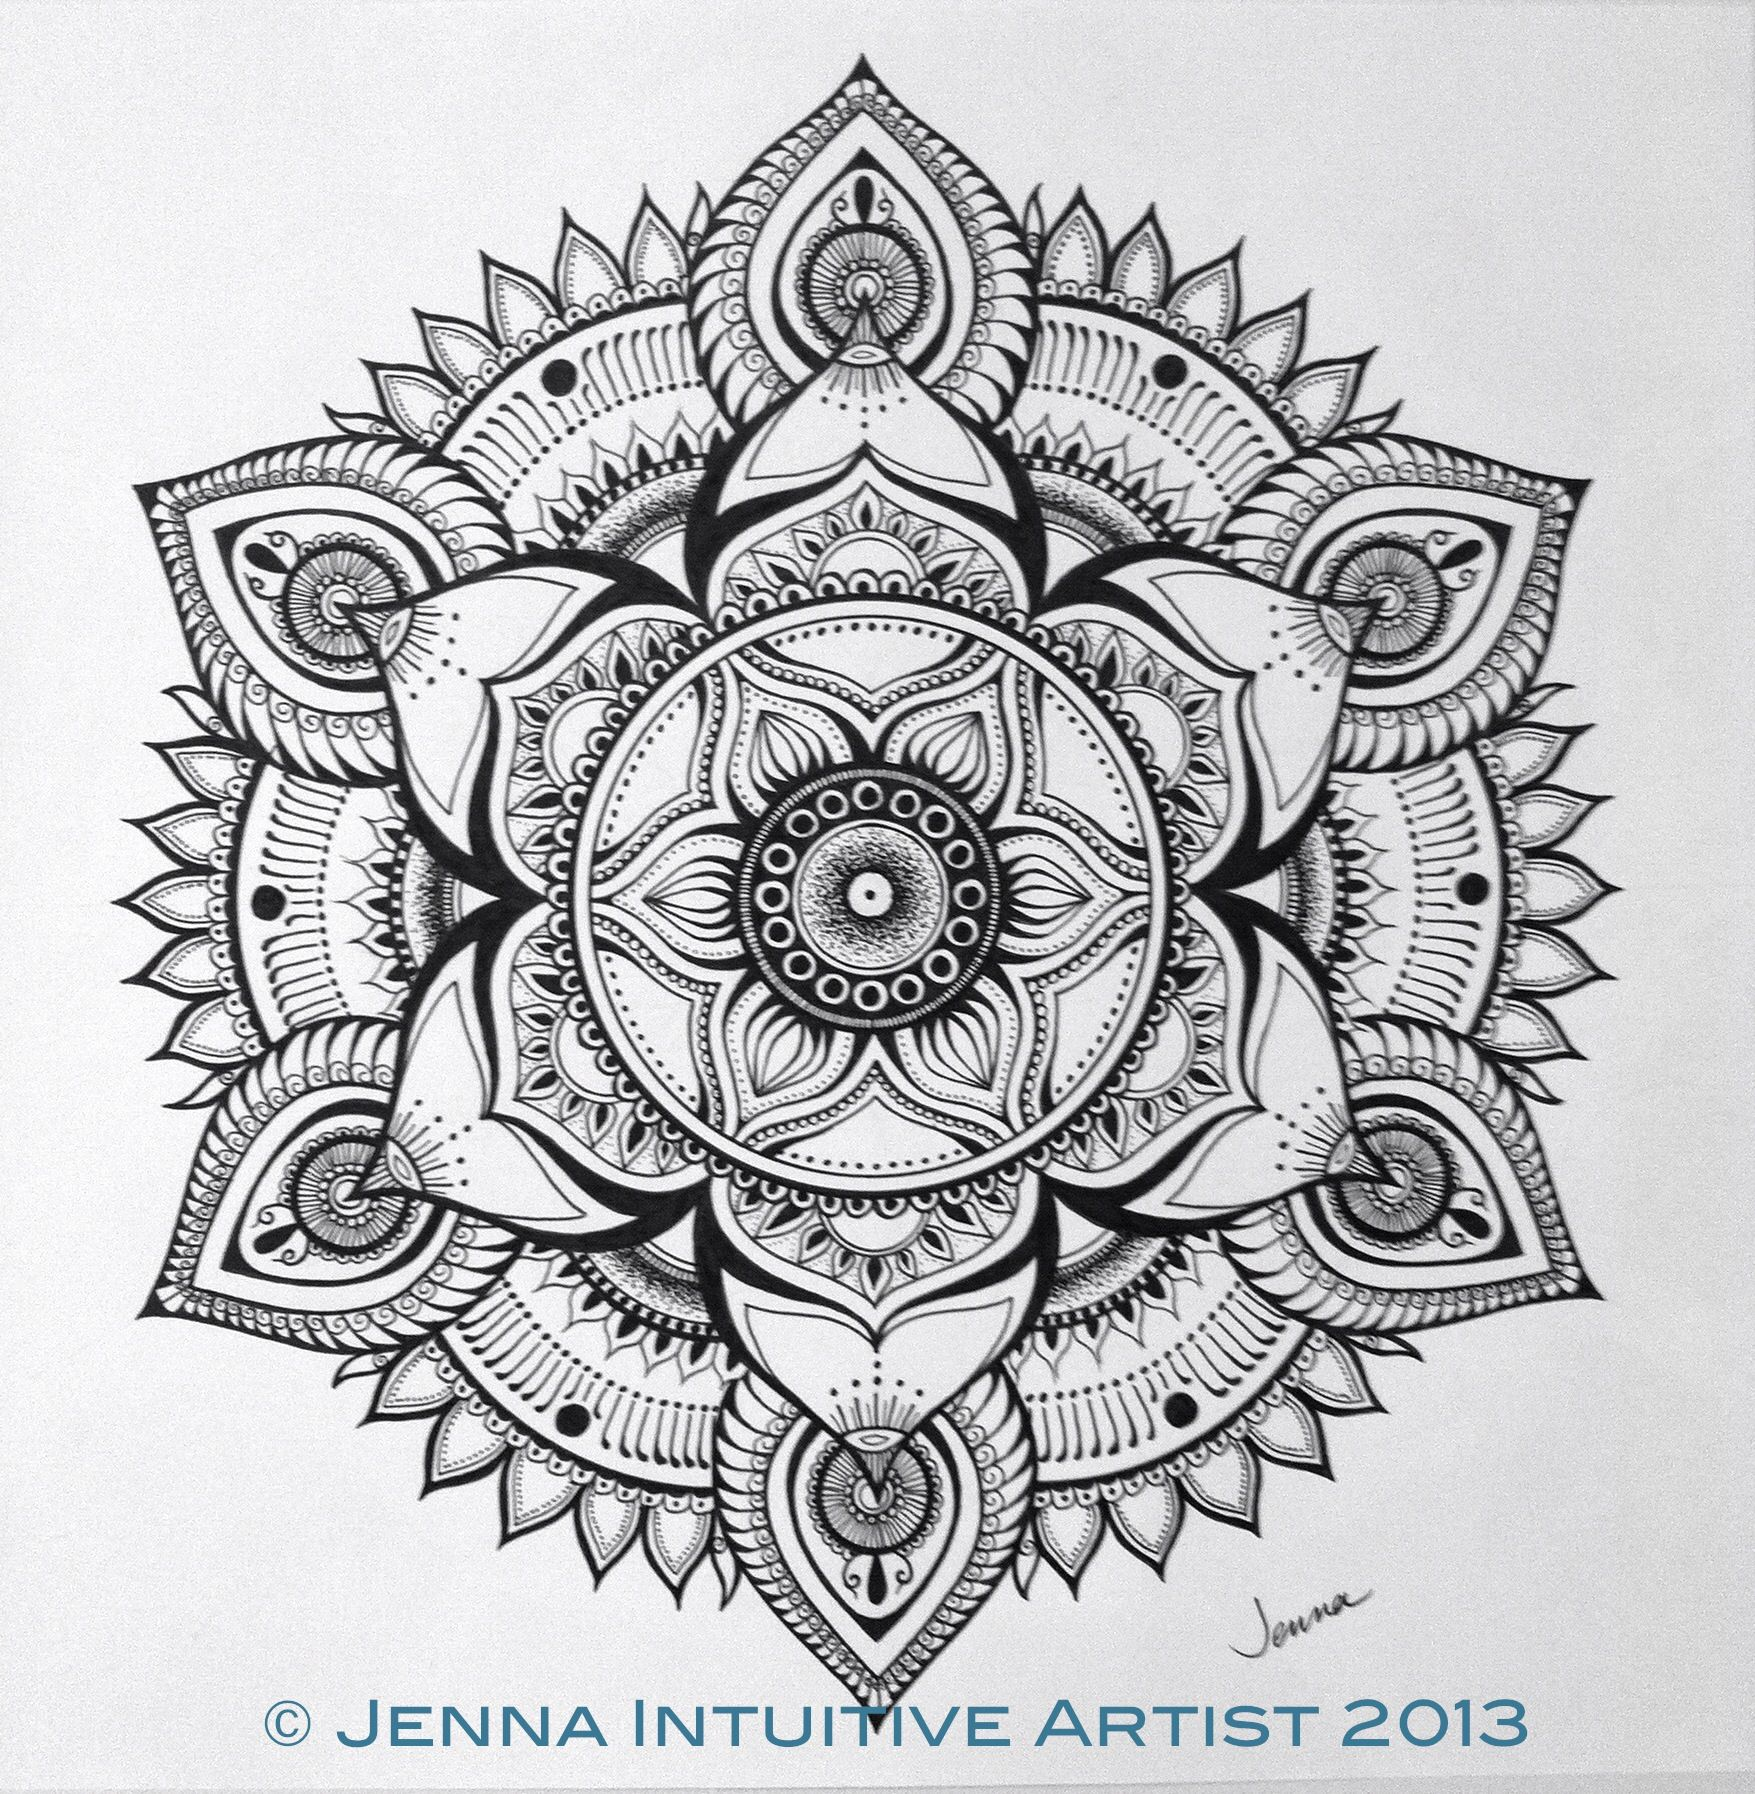 Jenna | Intuitive Artist - AMAZING detailed work... So inspired by ...